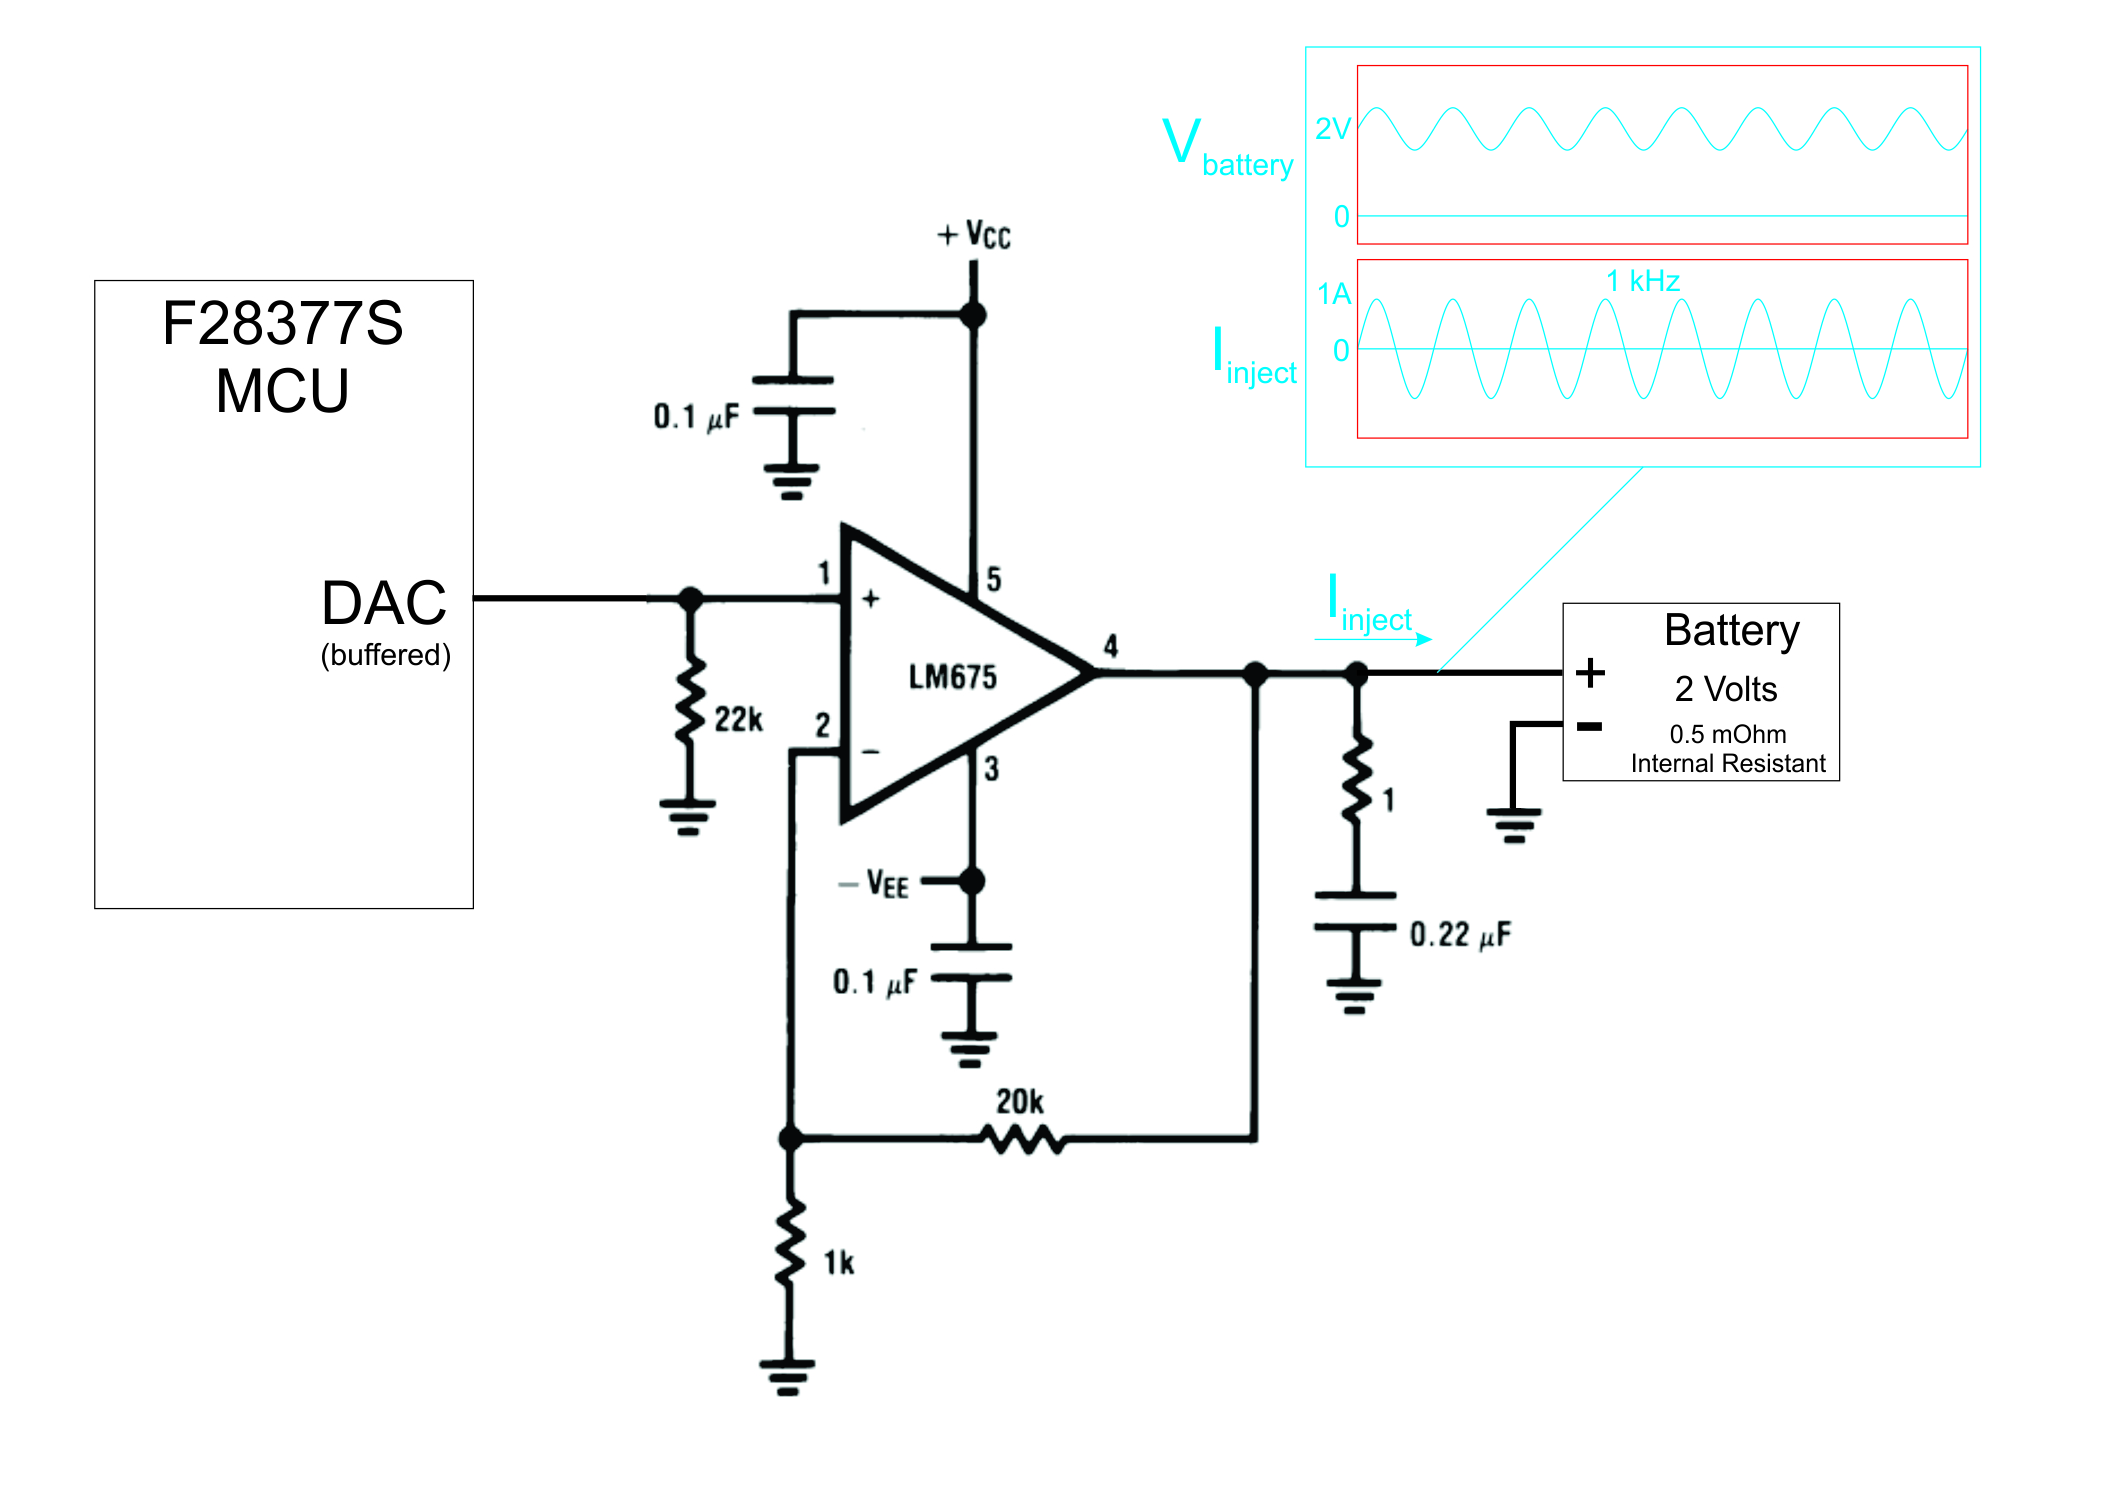 Can I generate a 1 amp 1 kHz current signal with LM675